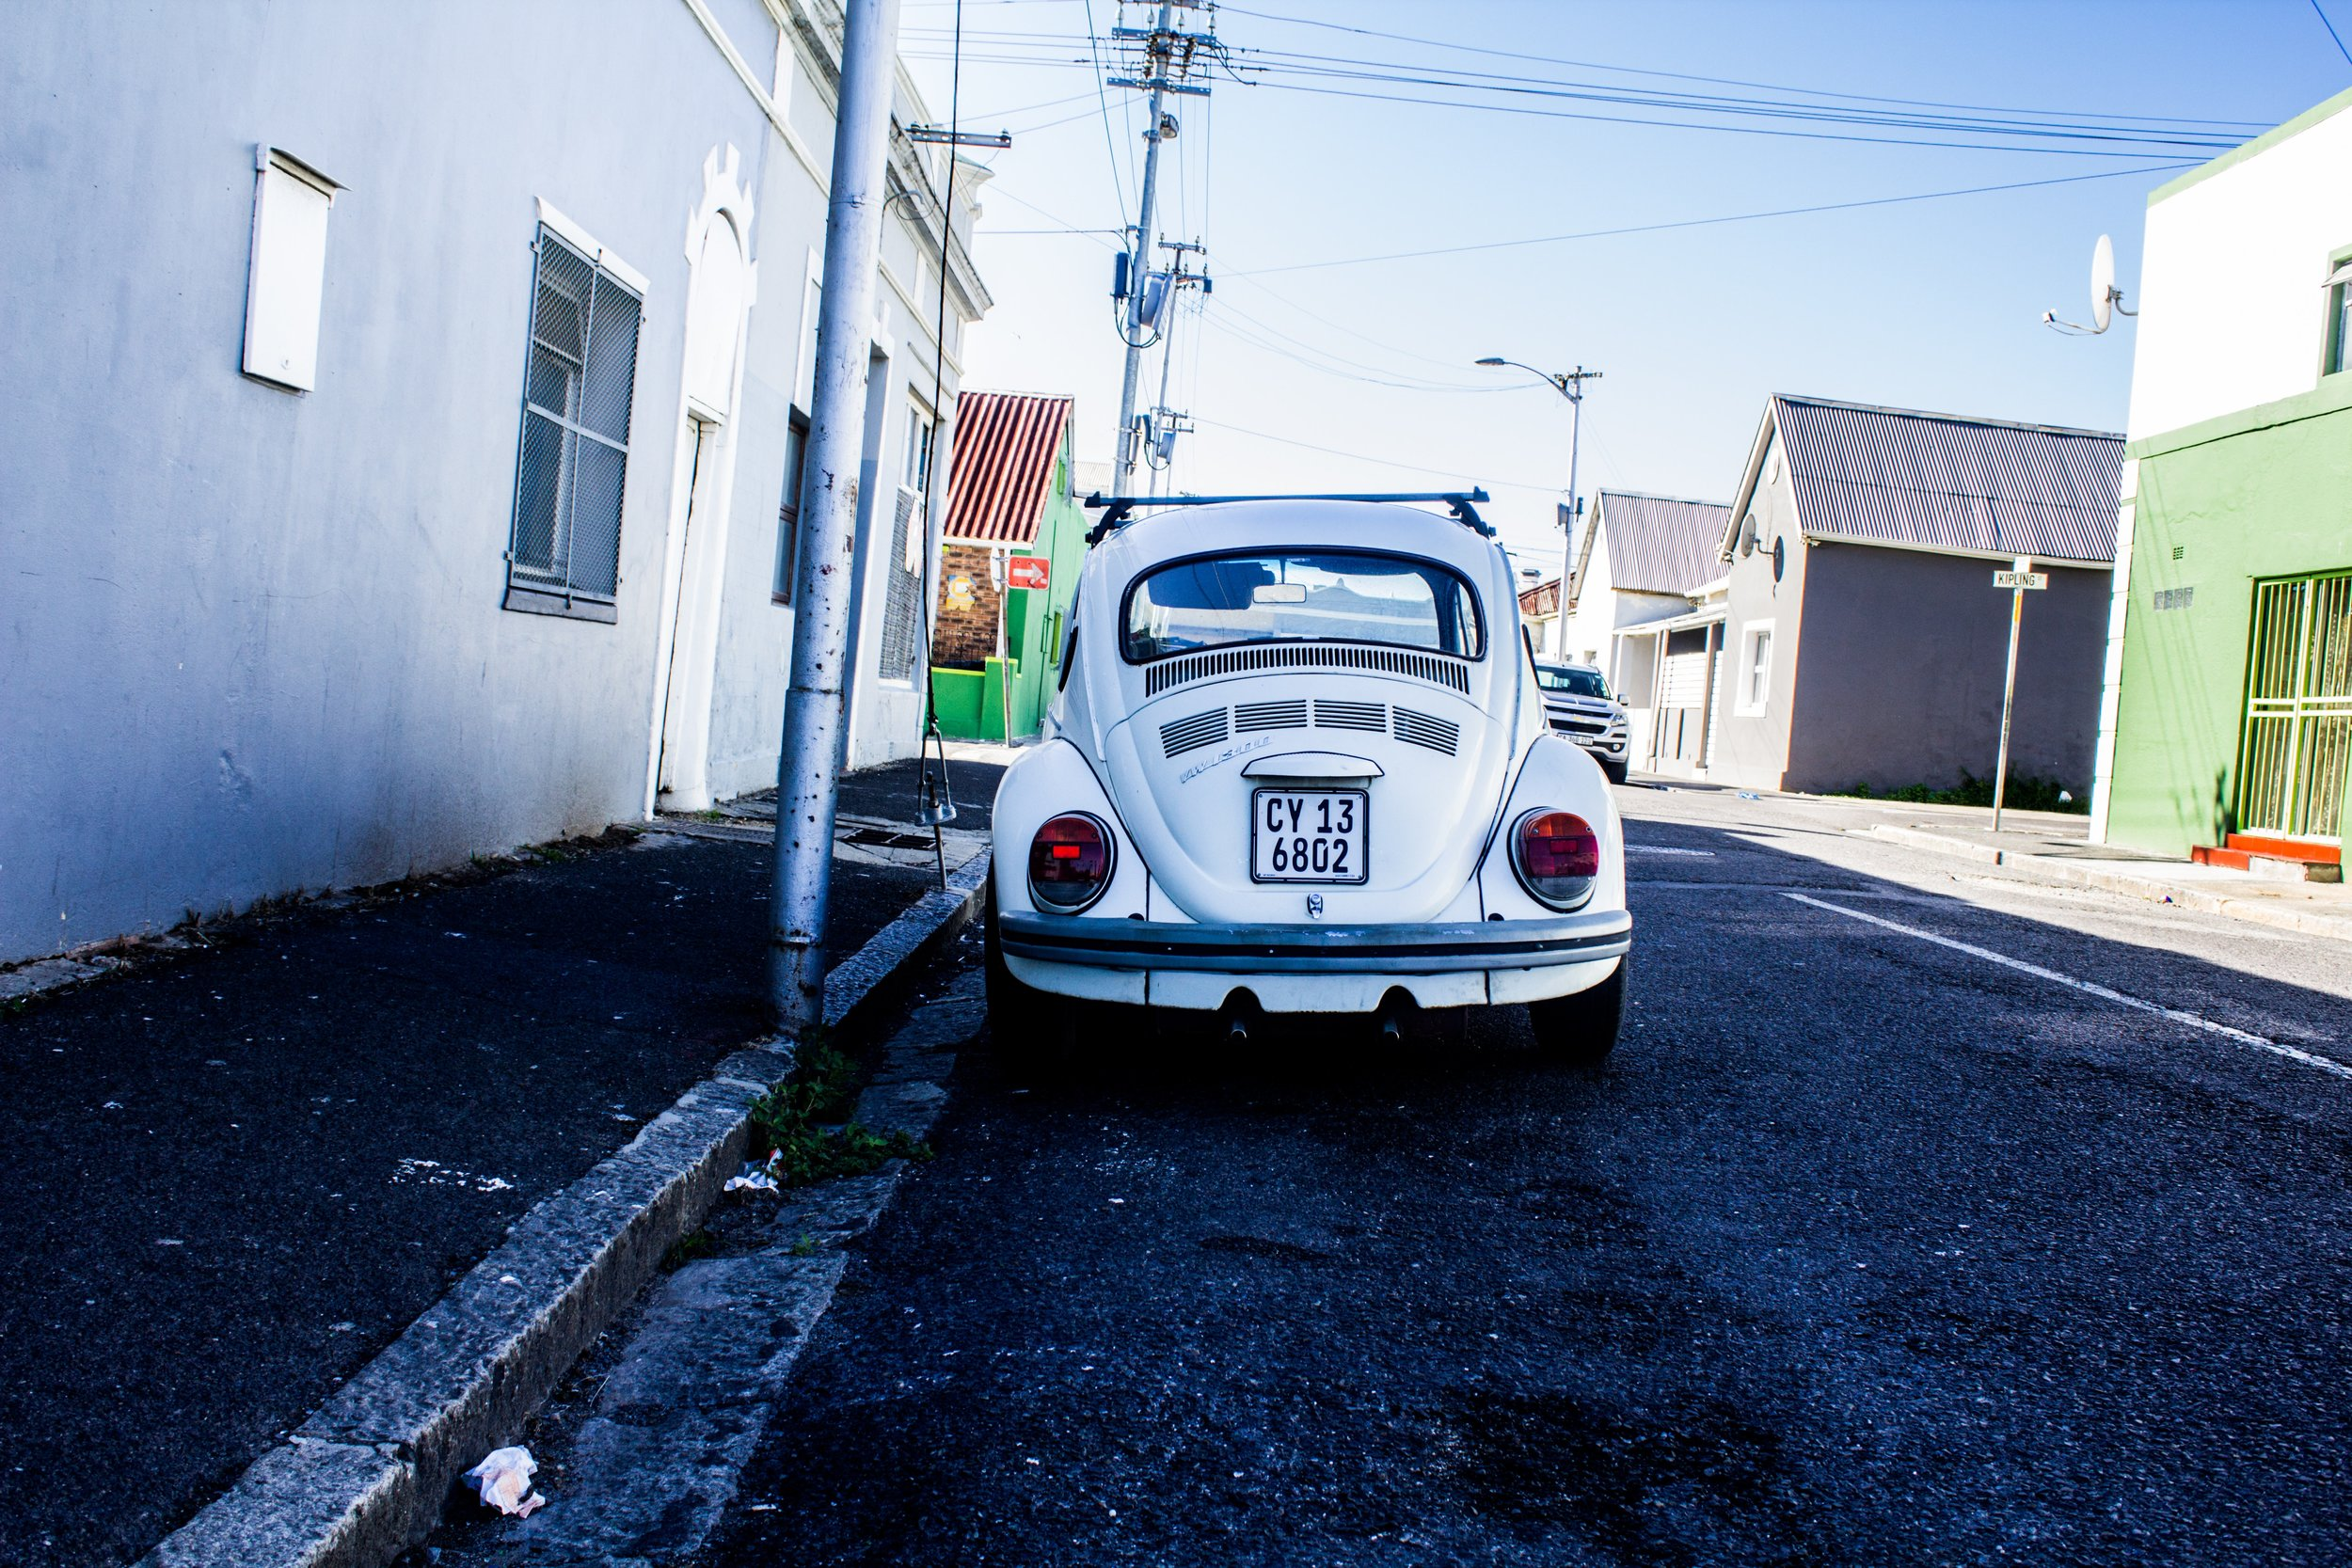 automobile-beetle-cape-town-979555.jpg